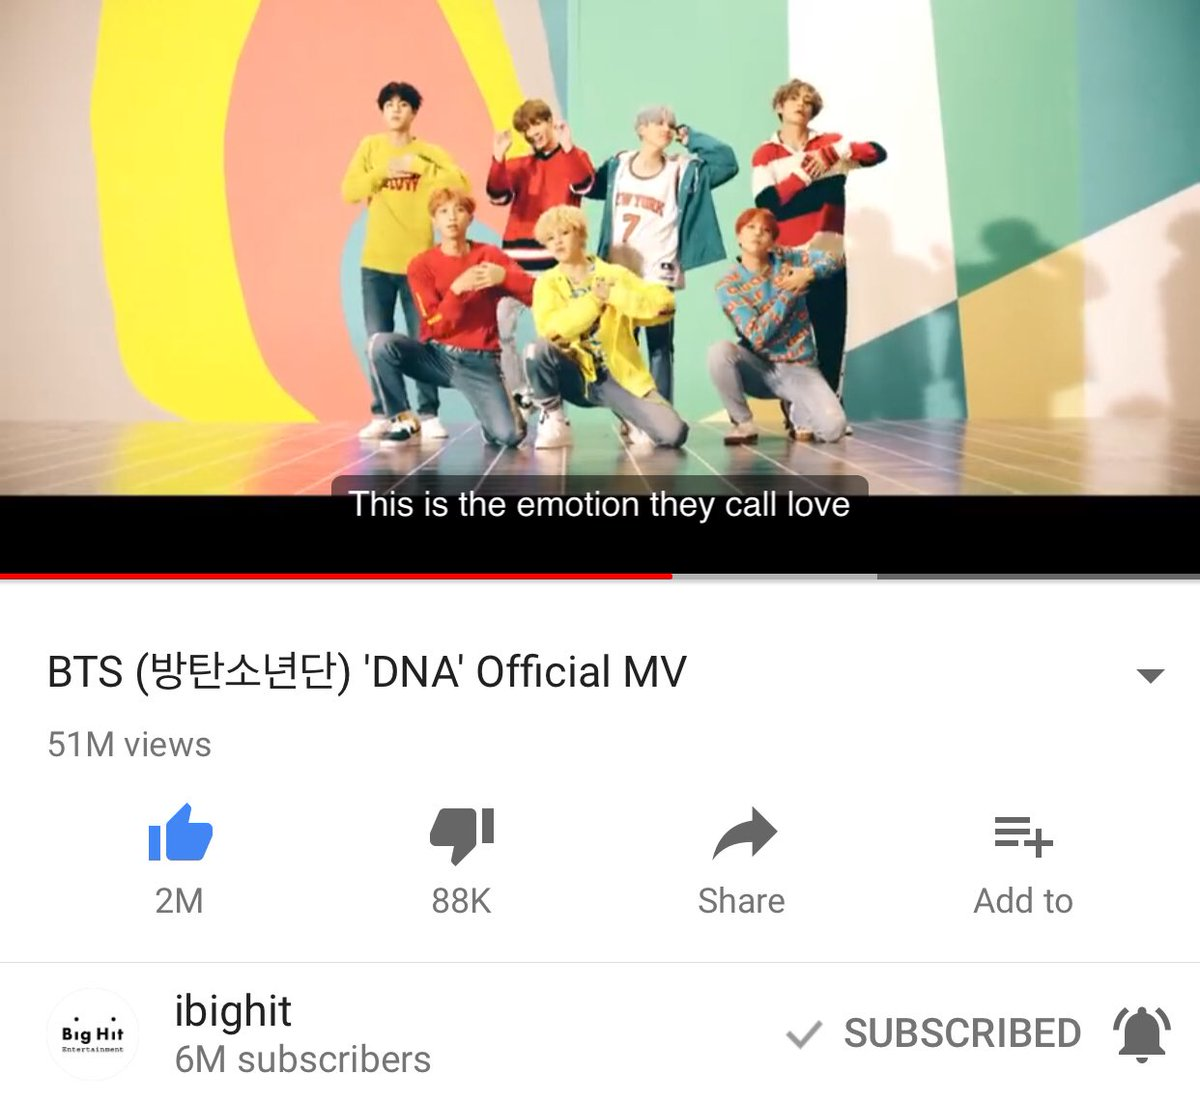 [!] @BTS_twt #DNA MV became the fastest K-pop group MV to reach 50M+ views earlier today, in a record 5 days &amp; 18h. <br>http://pic.twitter.com/RsxqZf76eL